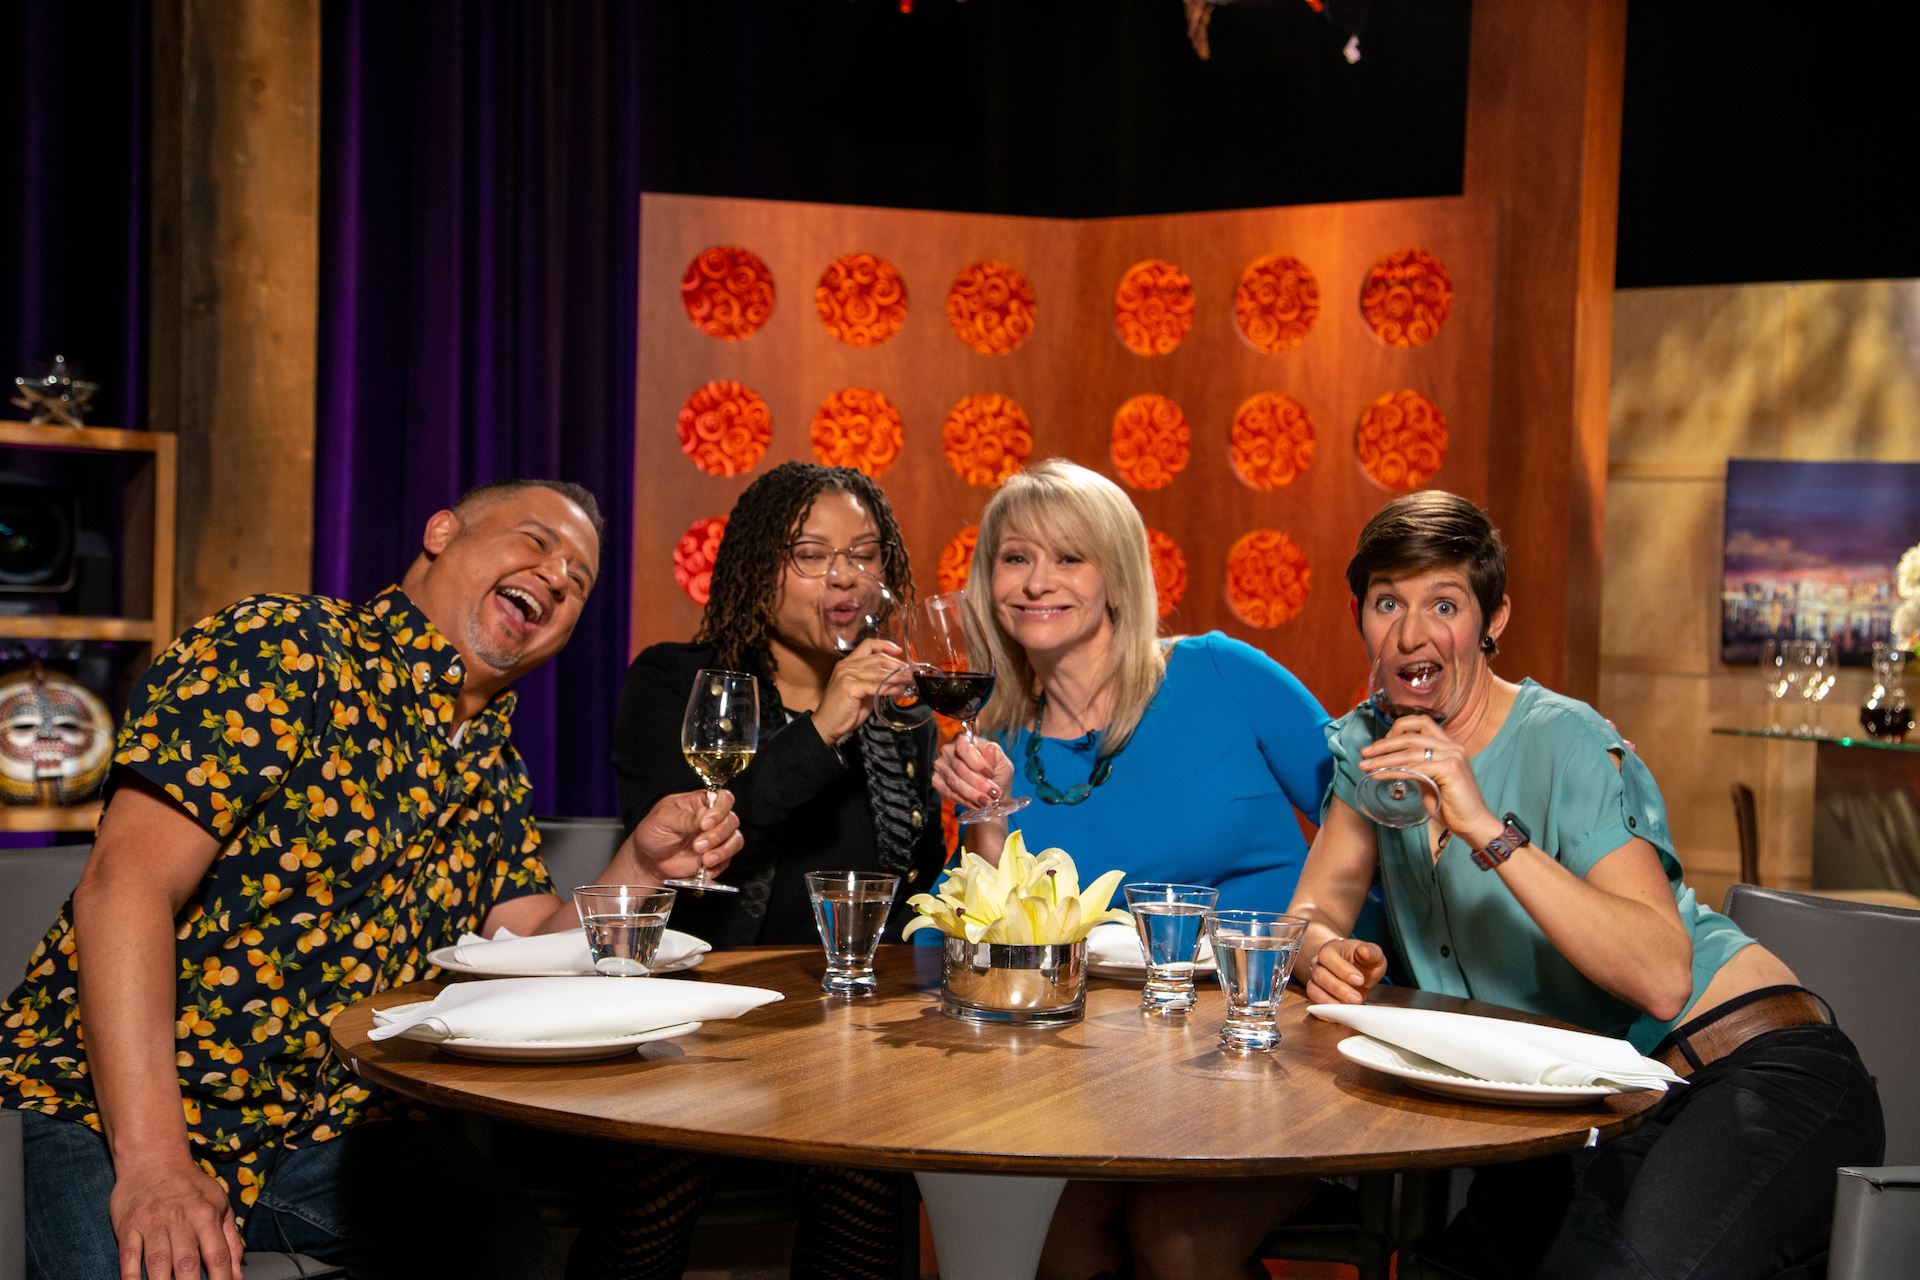 Host Leslie Sbrocco and guests on the set of season 14 episode 7.